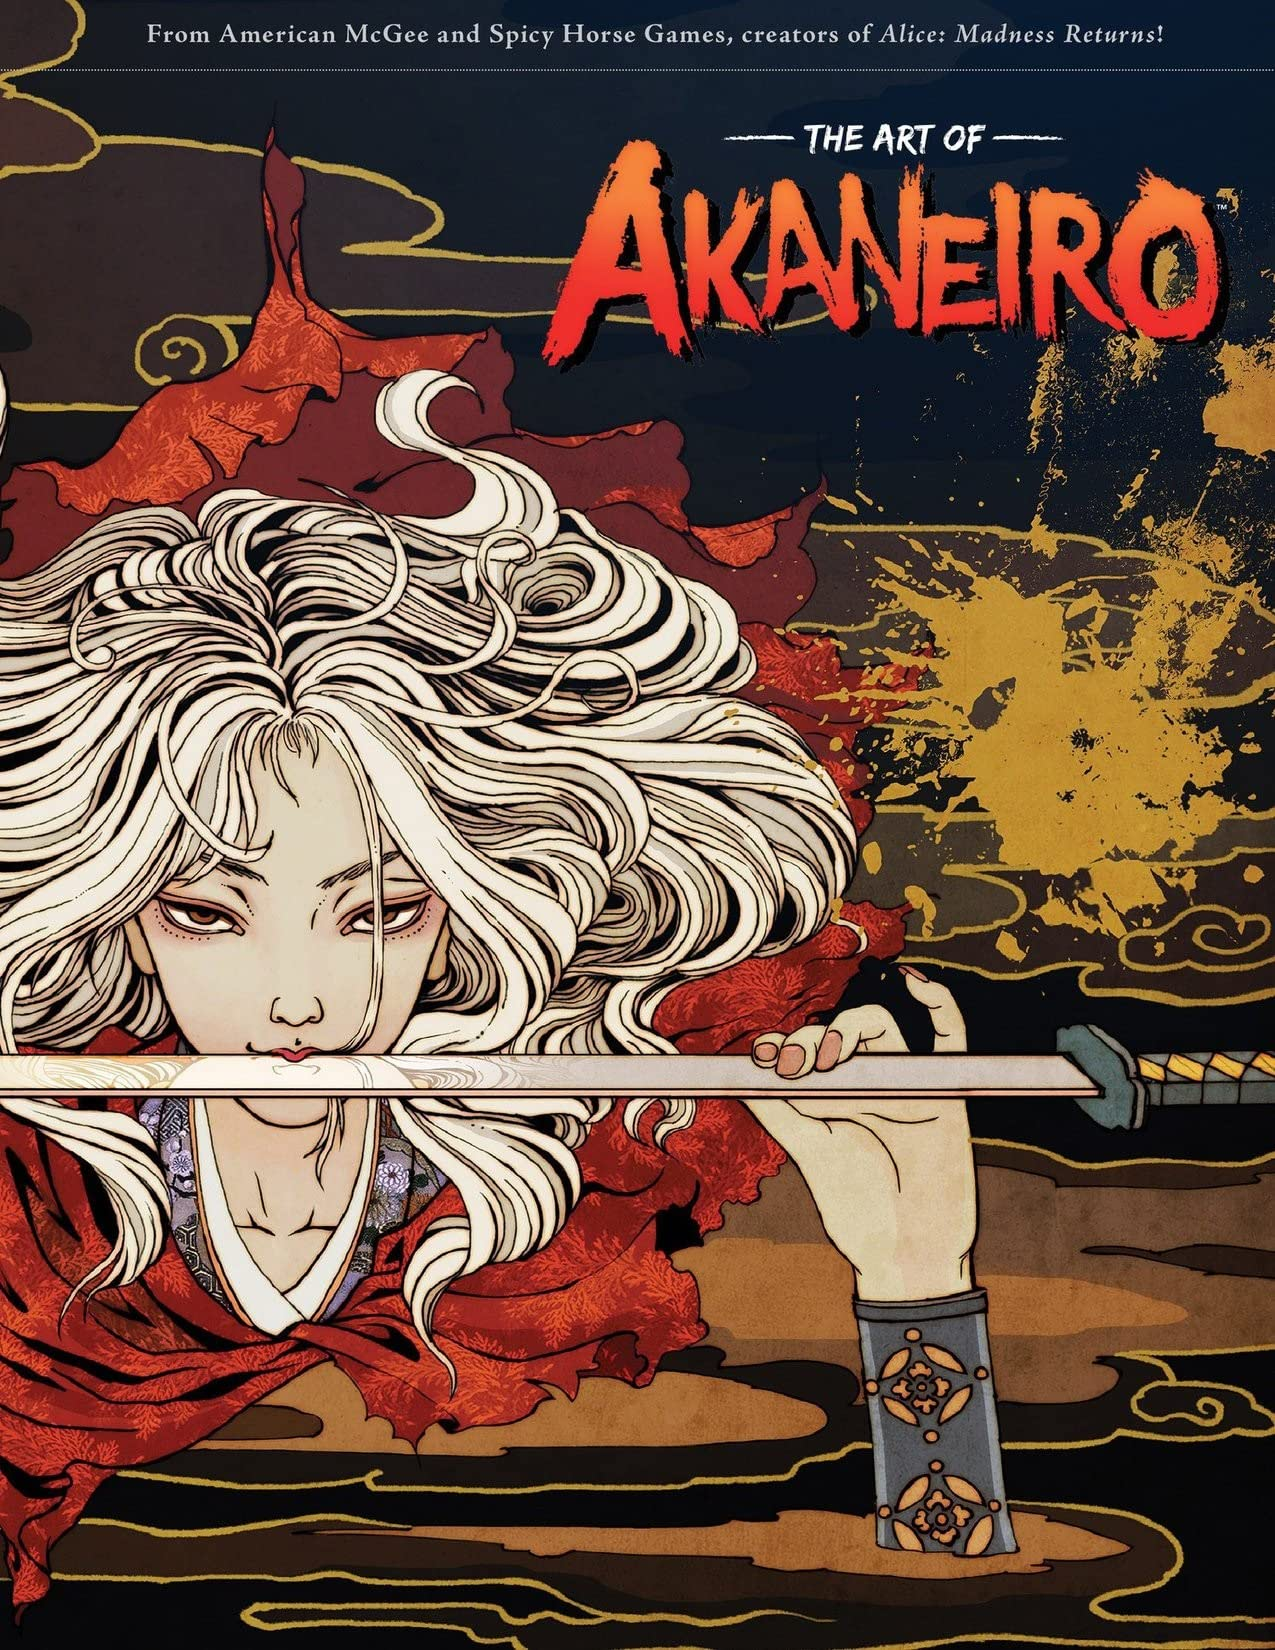 The Art of Akaneiro